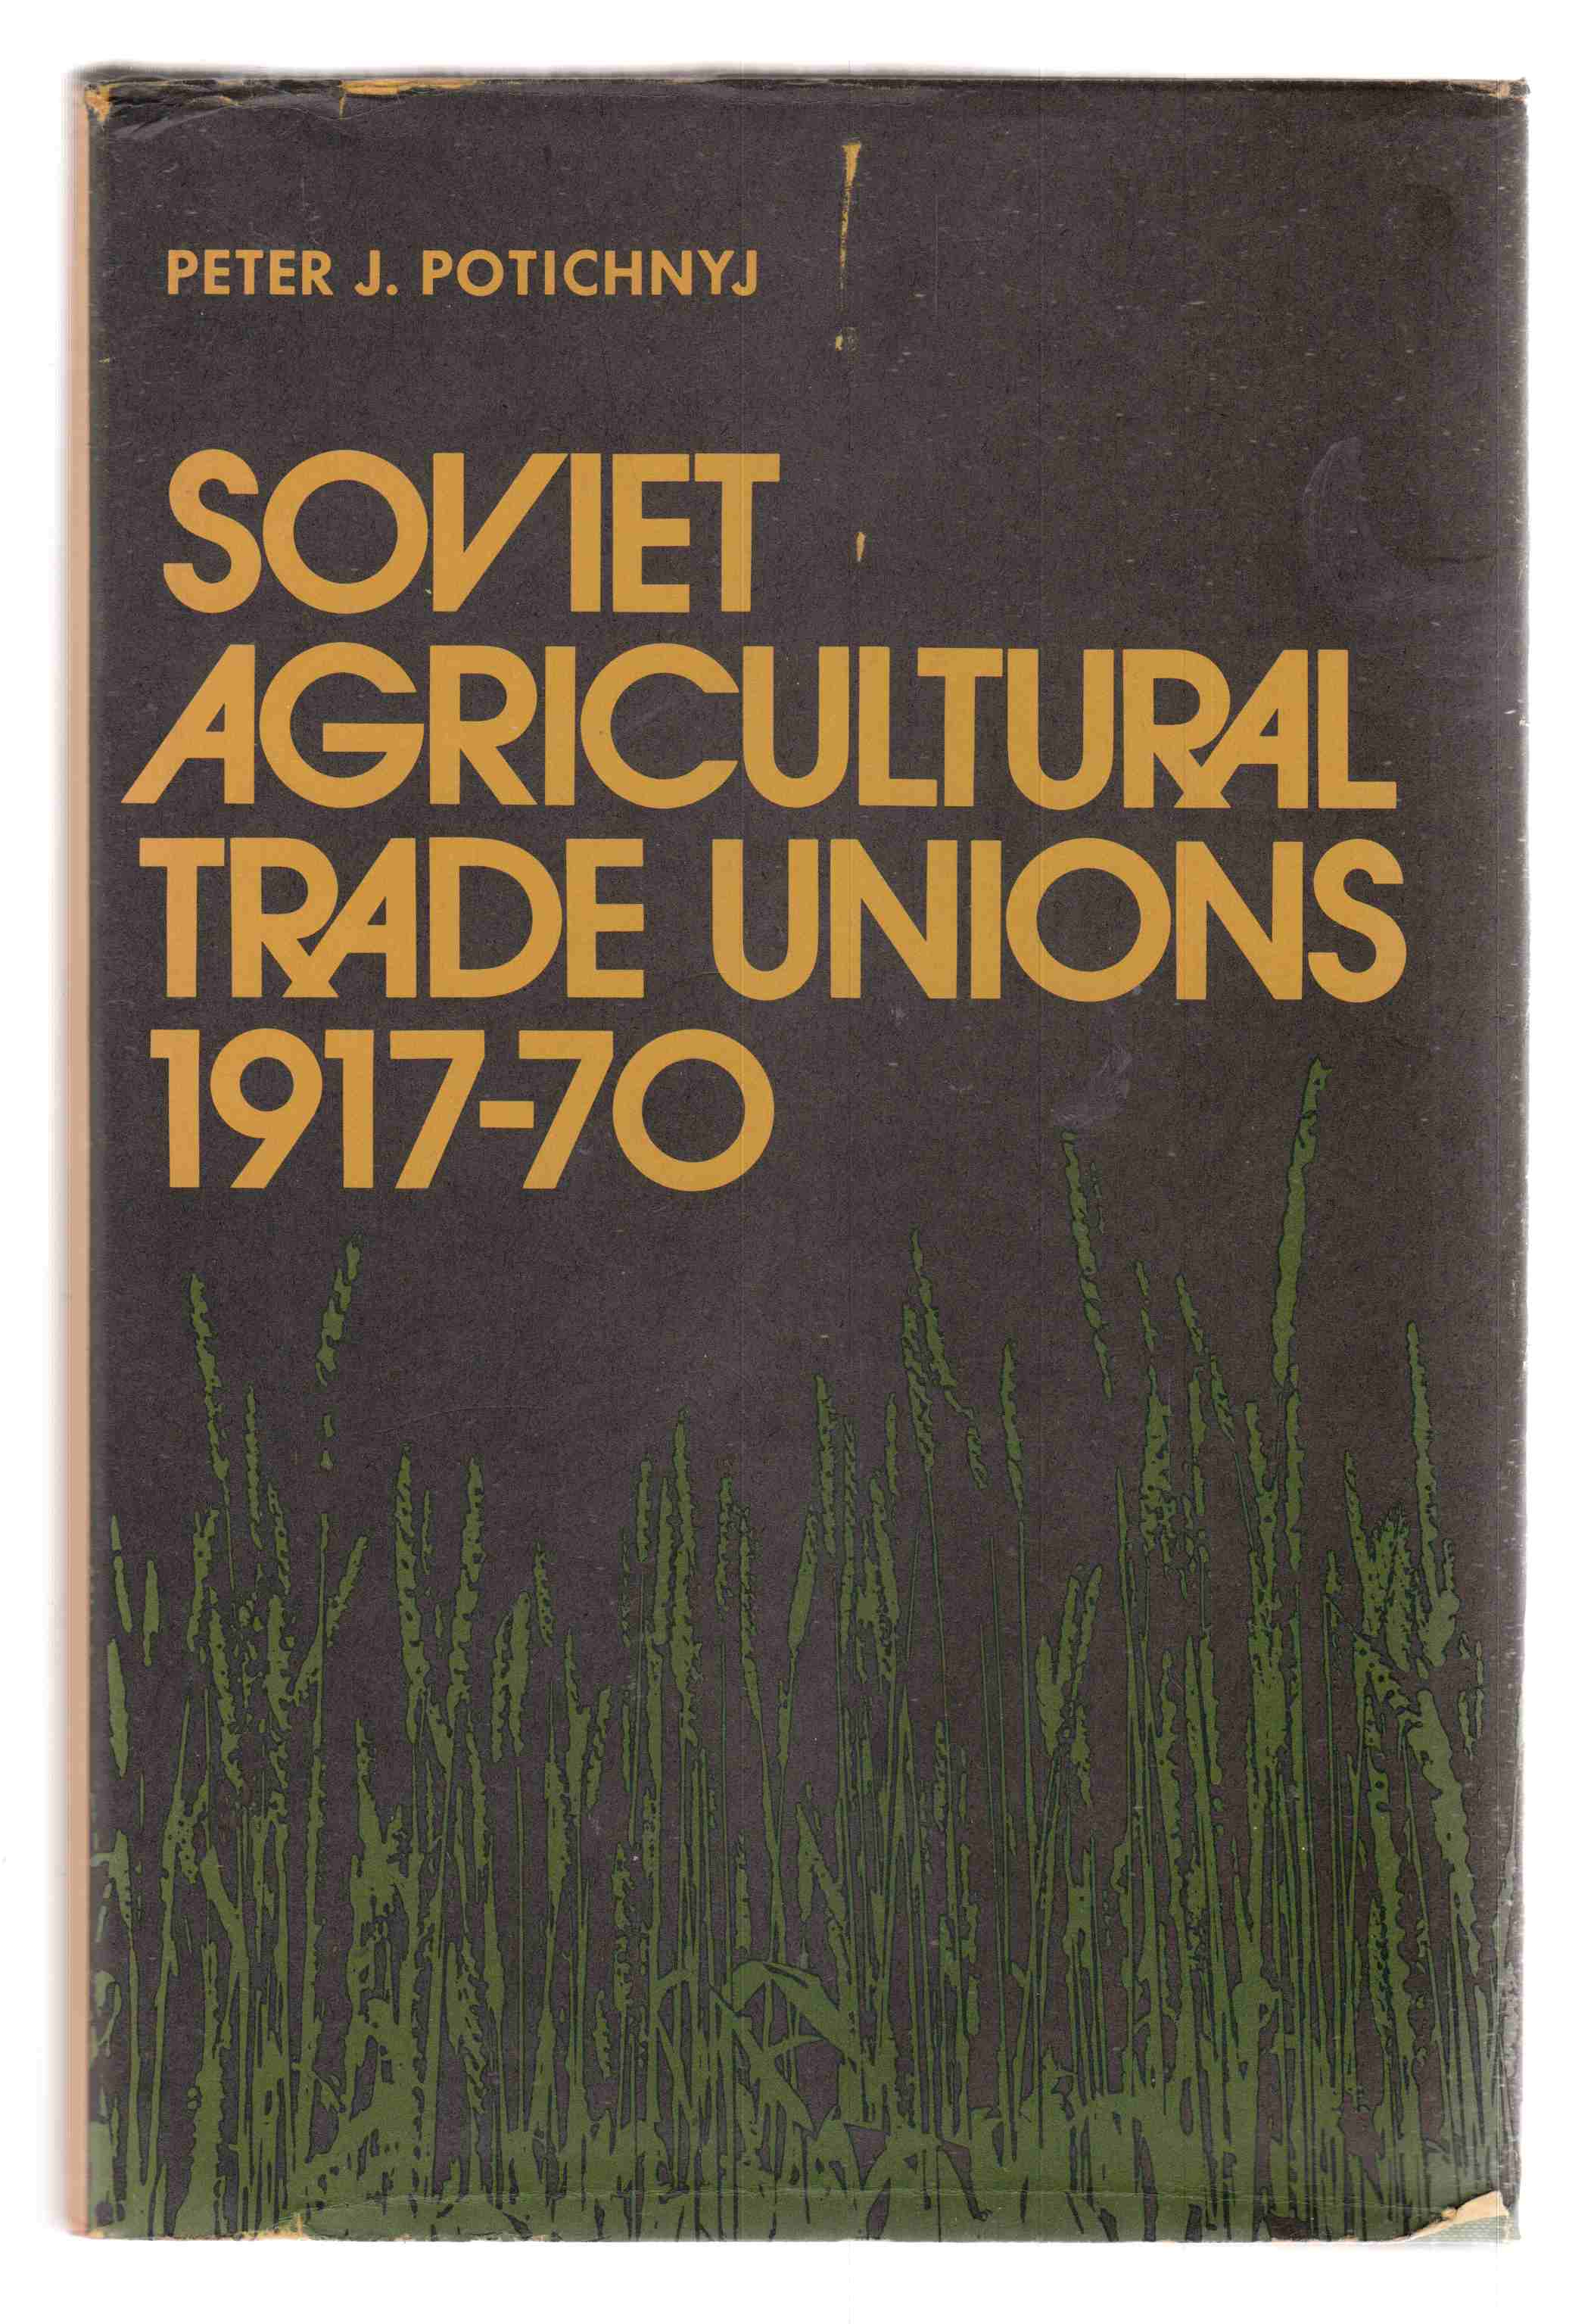 Image for Soviet Agricultural Trade Unions, 1917-70